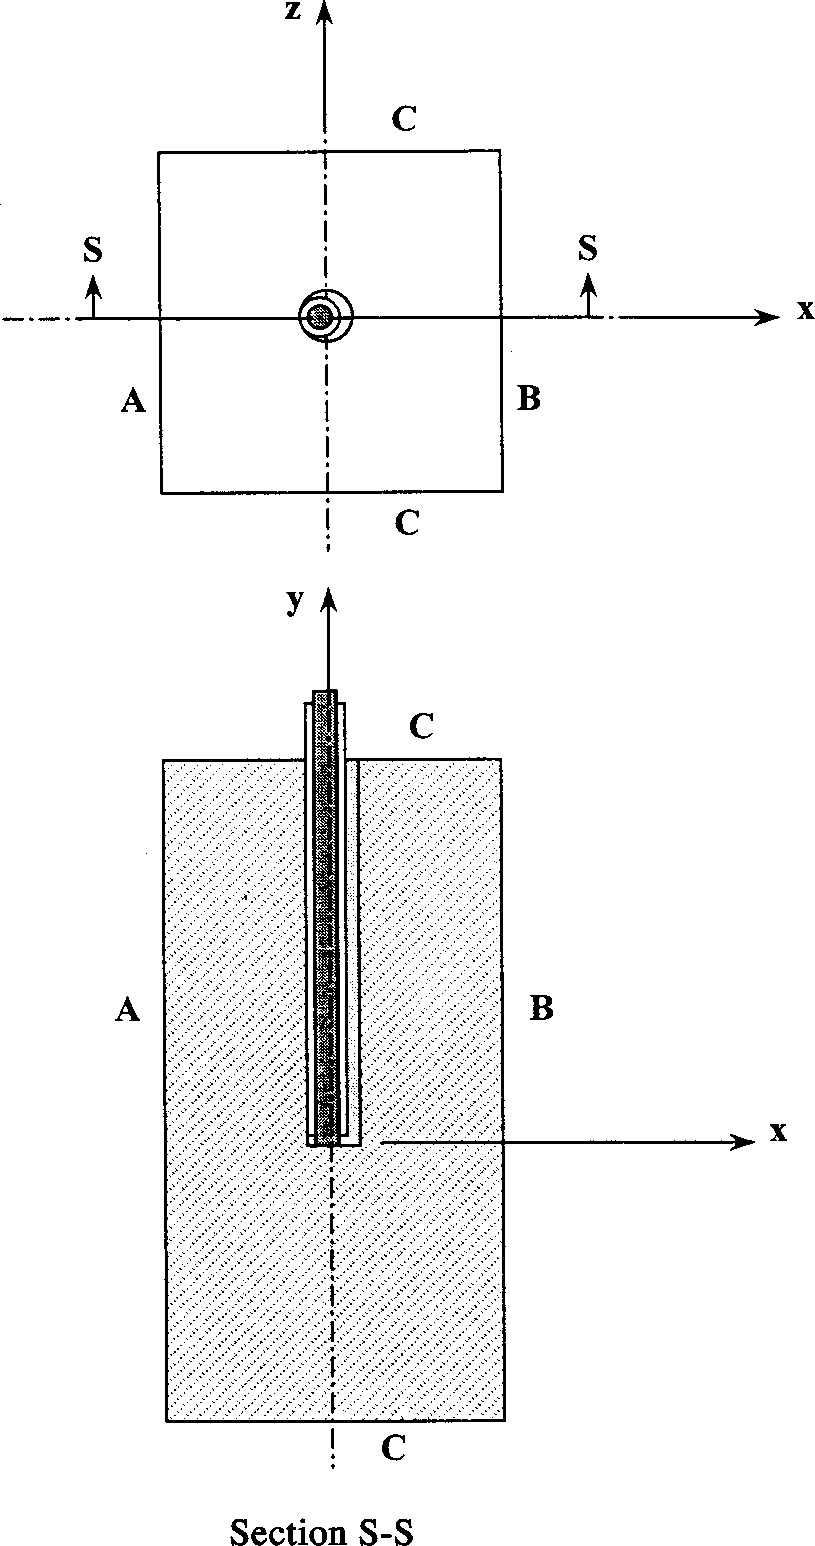 medium resolution of schematic representation of the orientation of the thermocouple installation in relation to the hot and cold